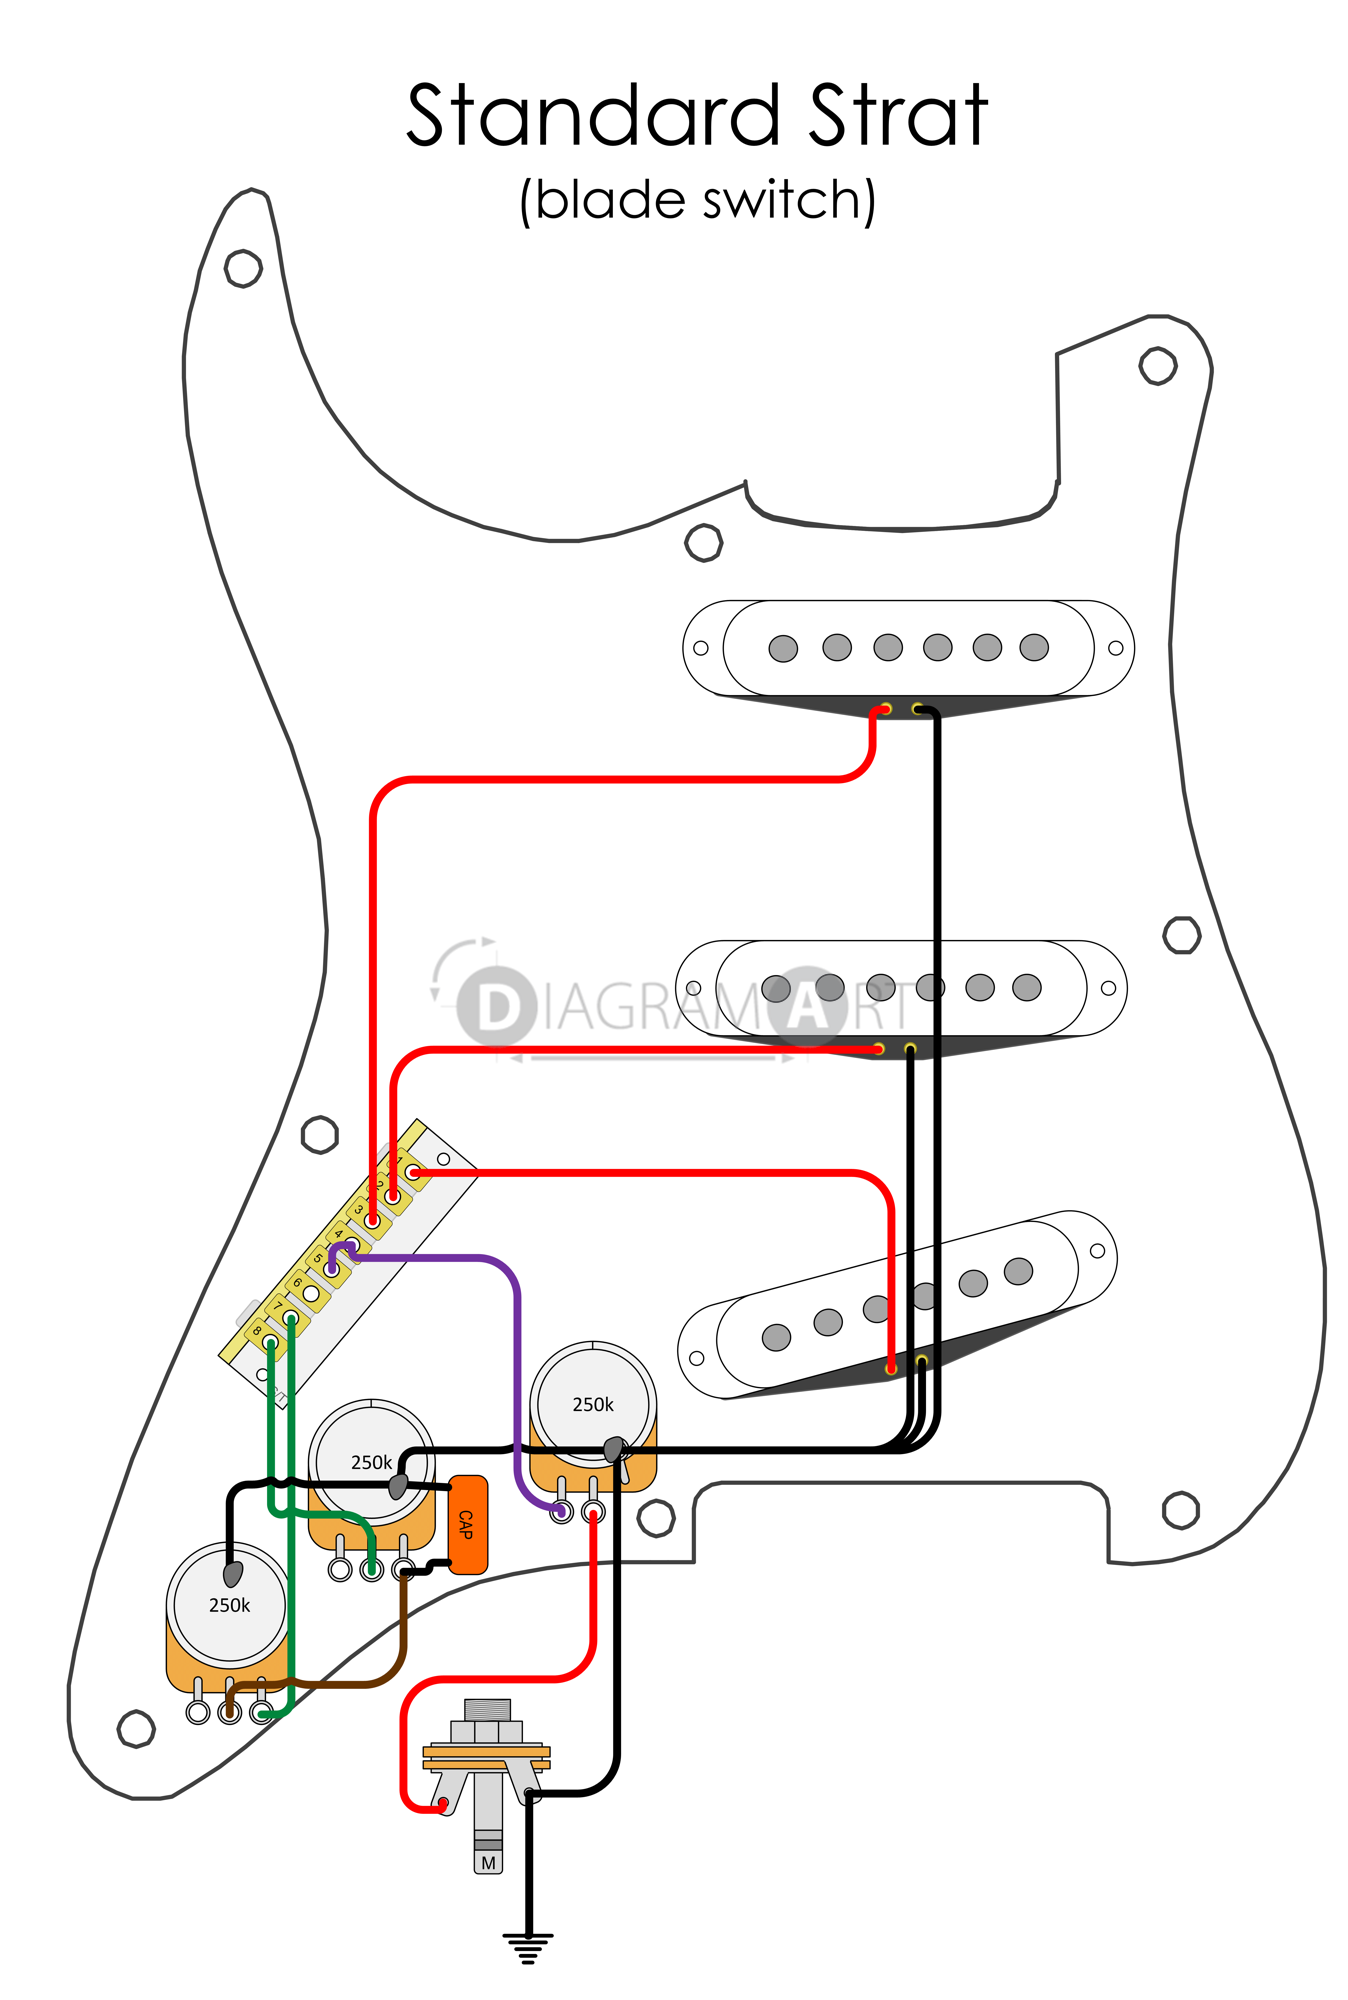 Electric Guitar Wiring: Standard Strat (Blade Switch) [Electric ...